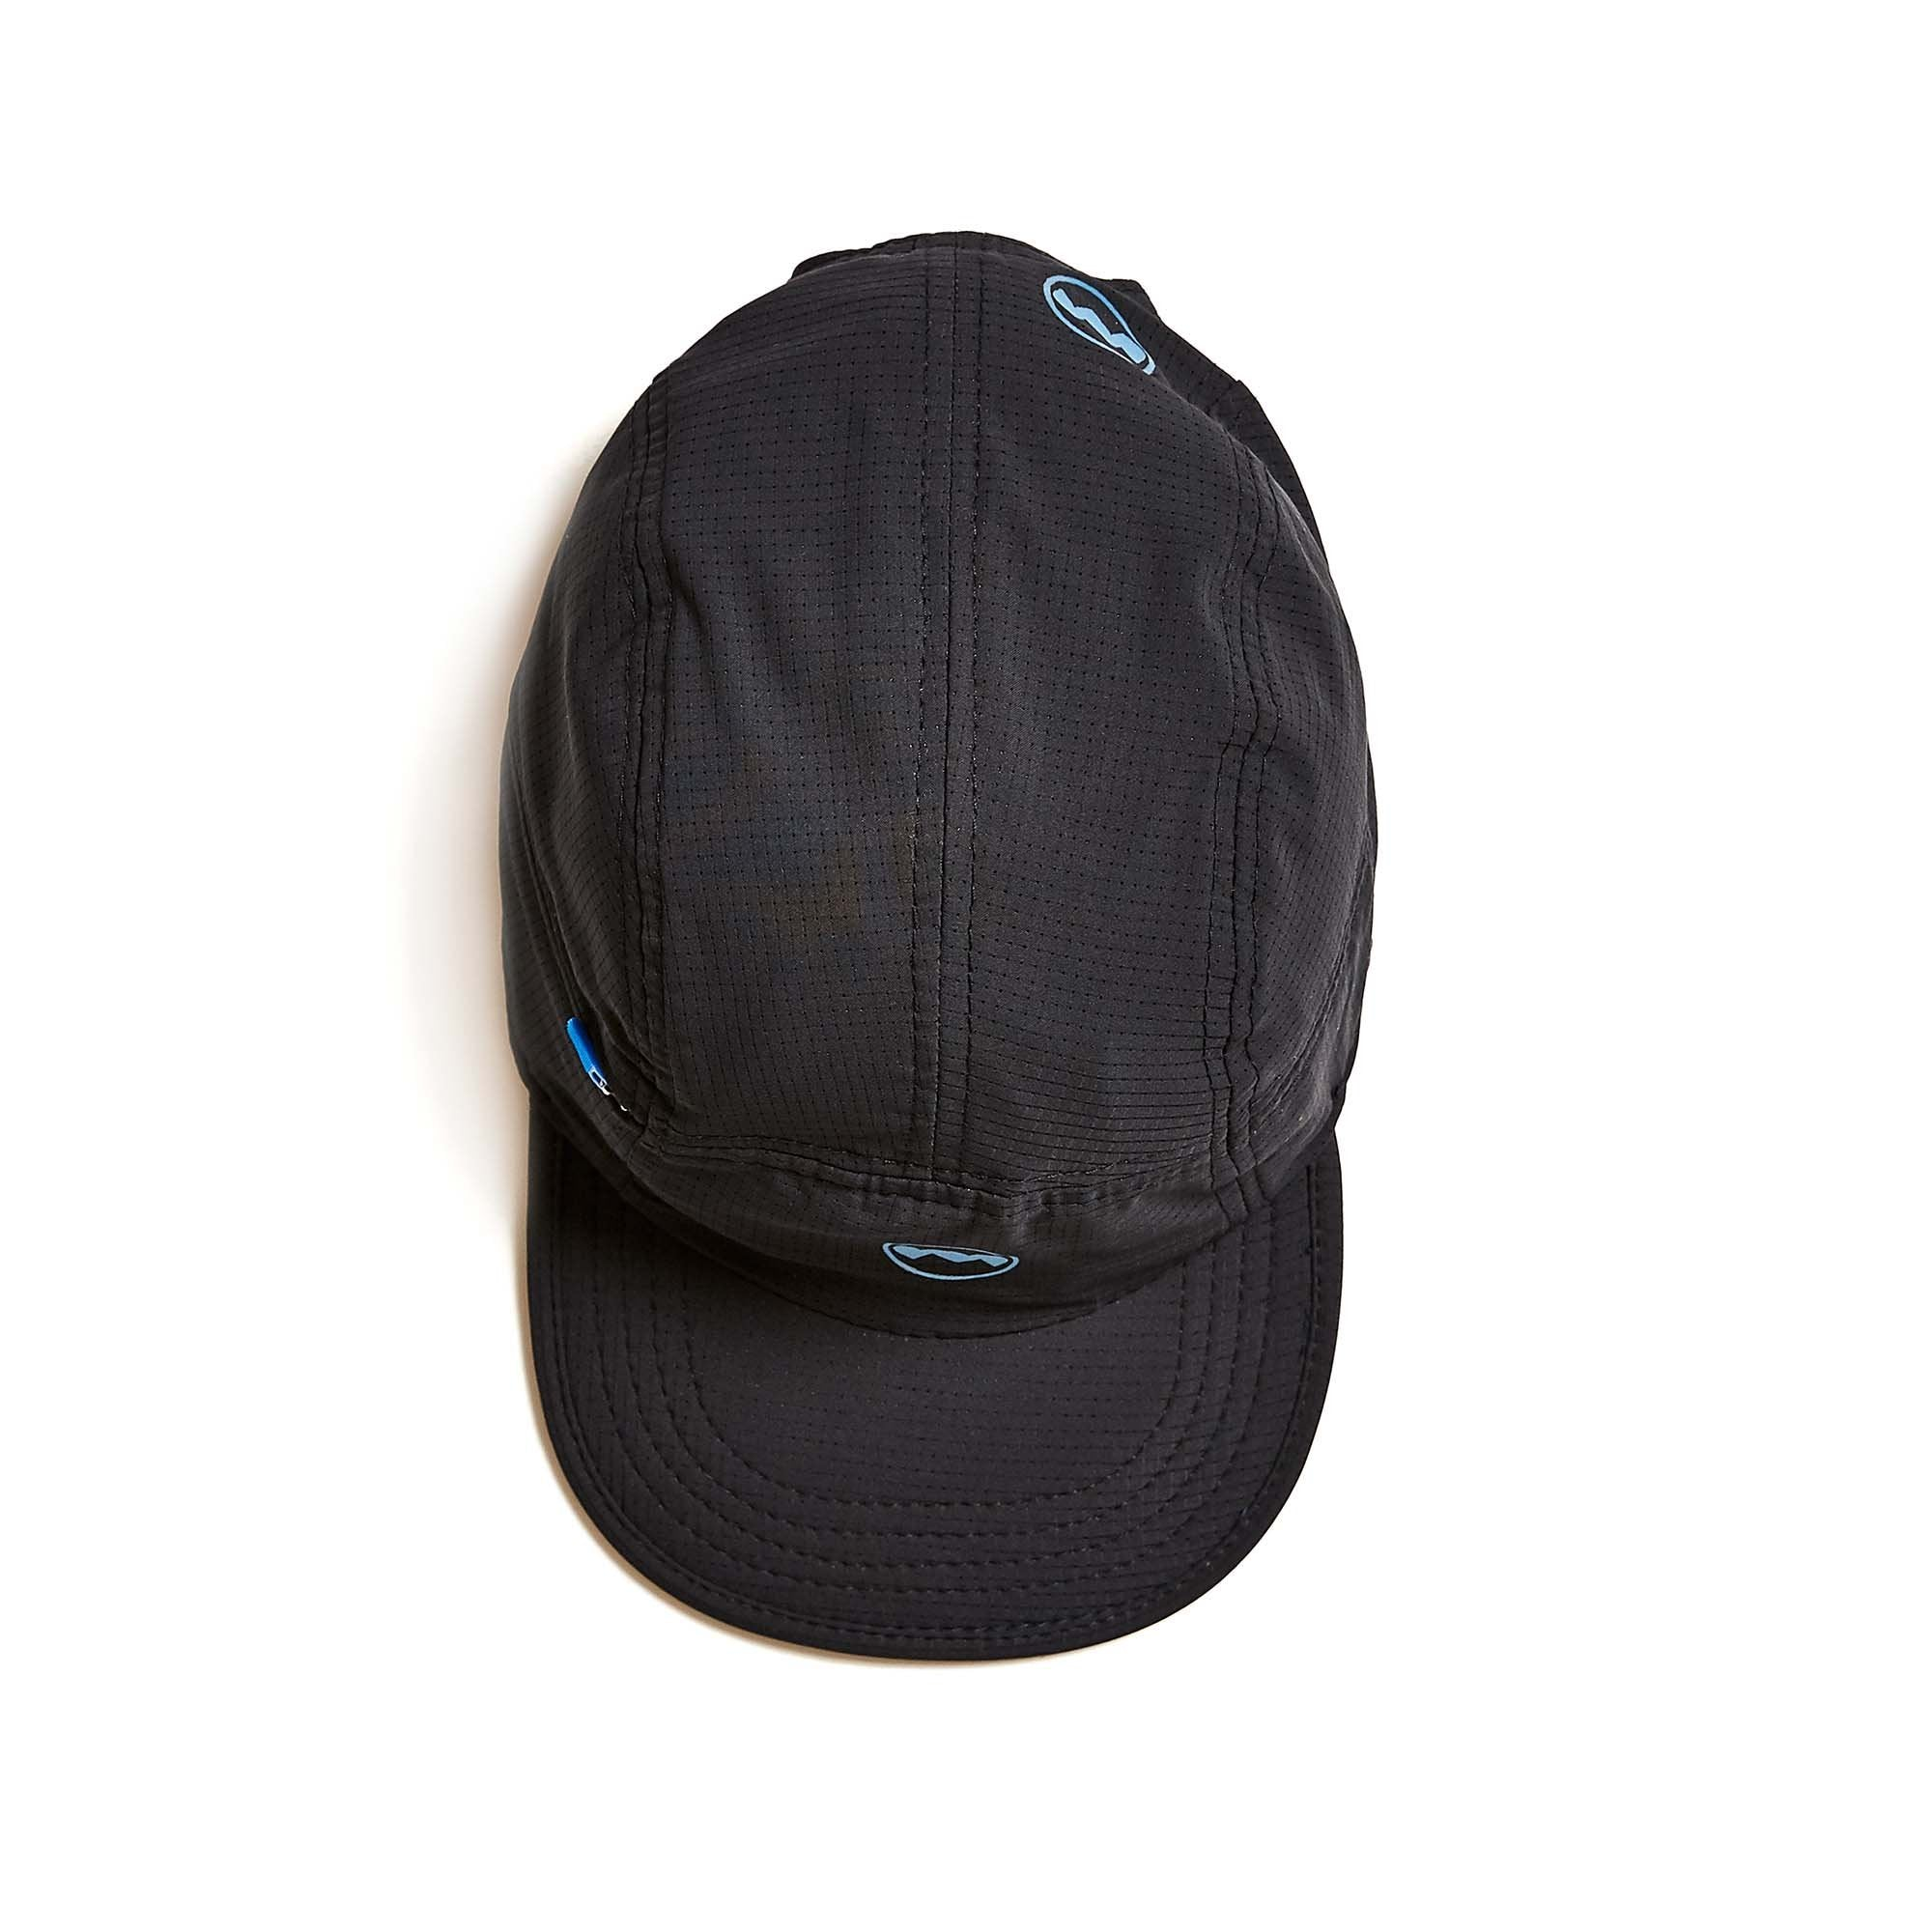 [Re]Run Cap in Midnight